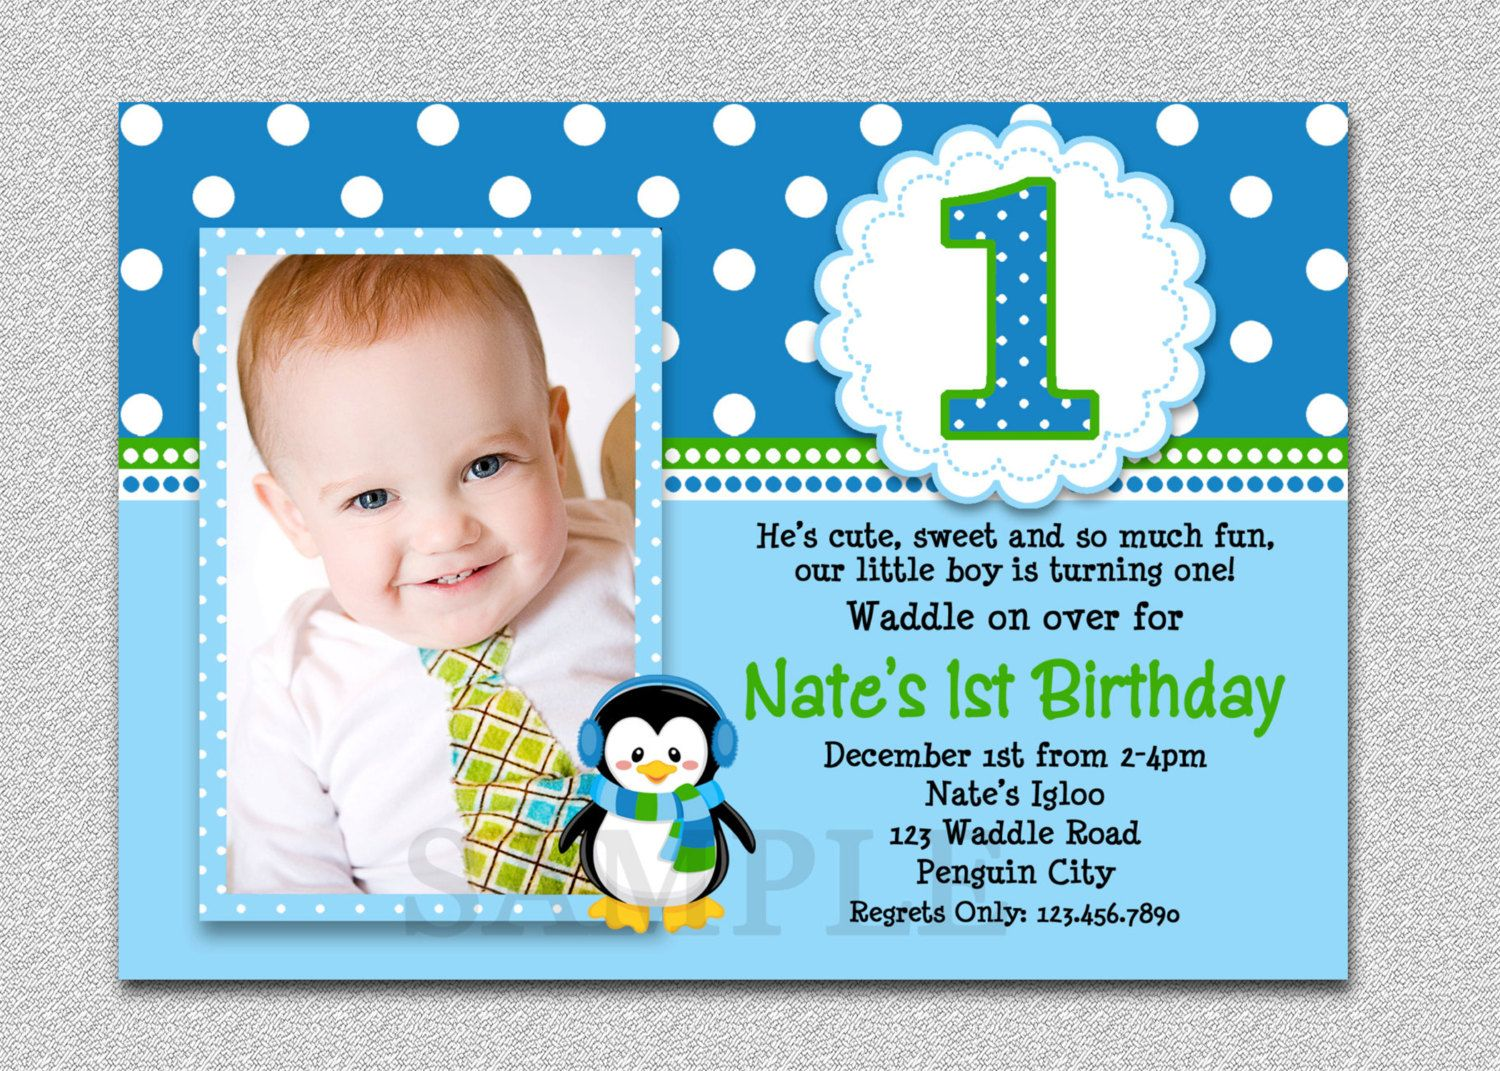 Invitation card 1st birthday boy vatozozdevelopment invitation card 1st birthday boy filmwisefo